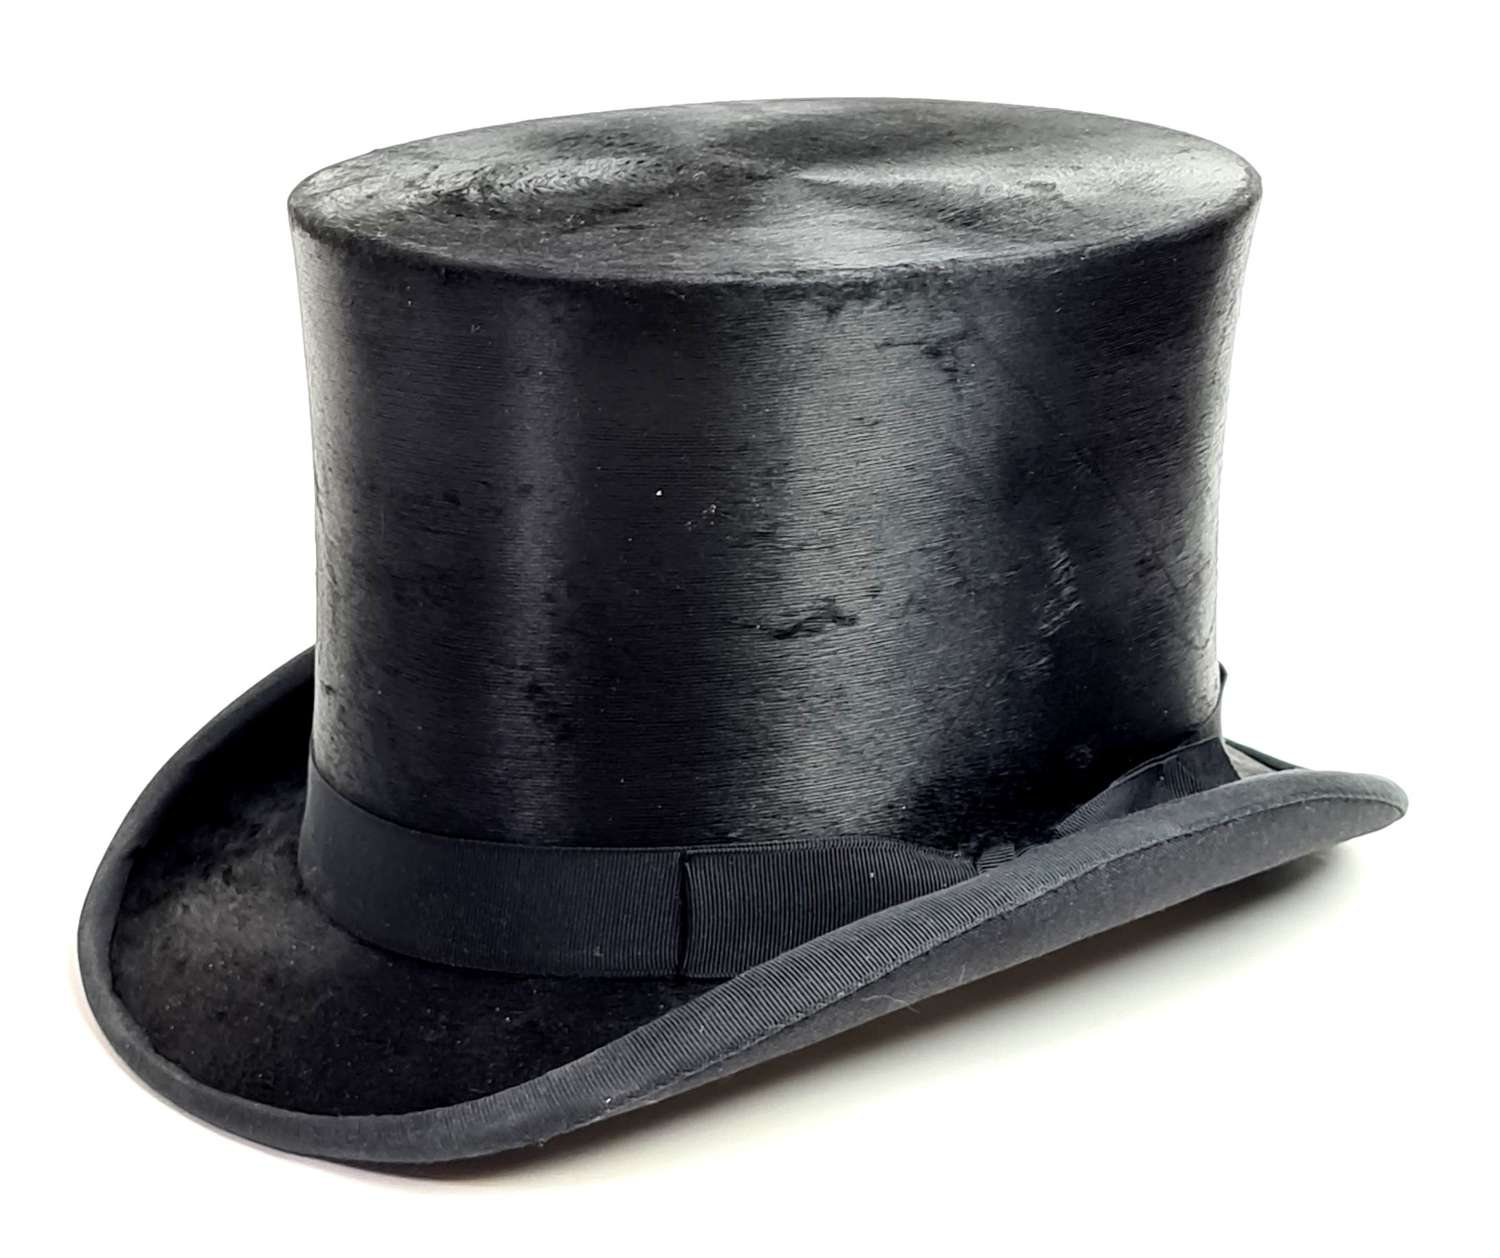 Scott & Co Top Hat